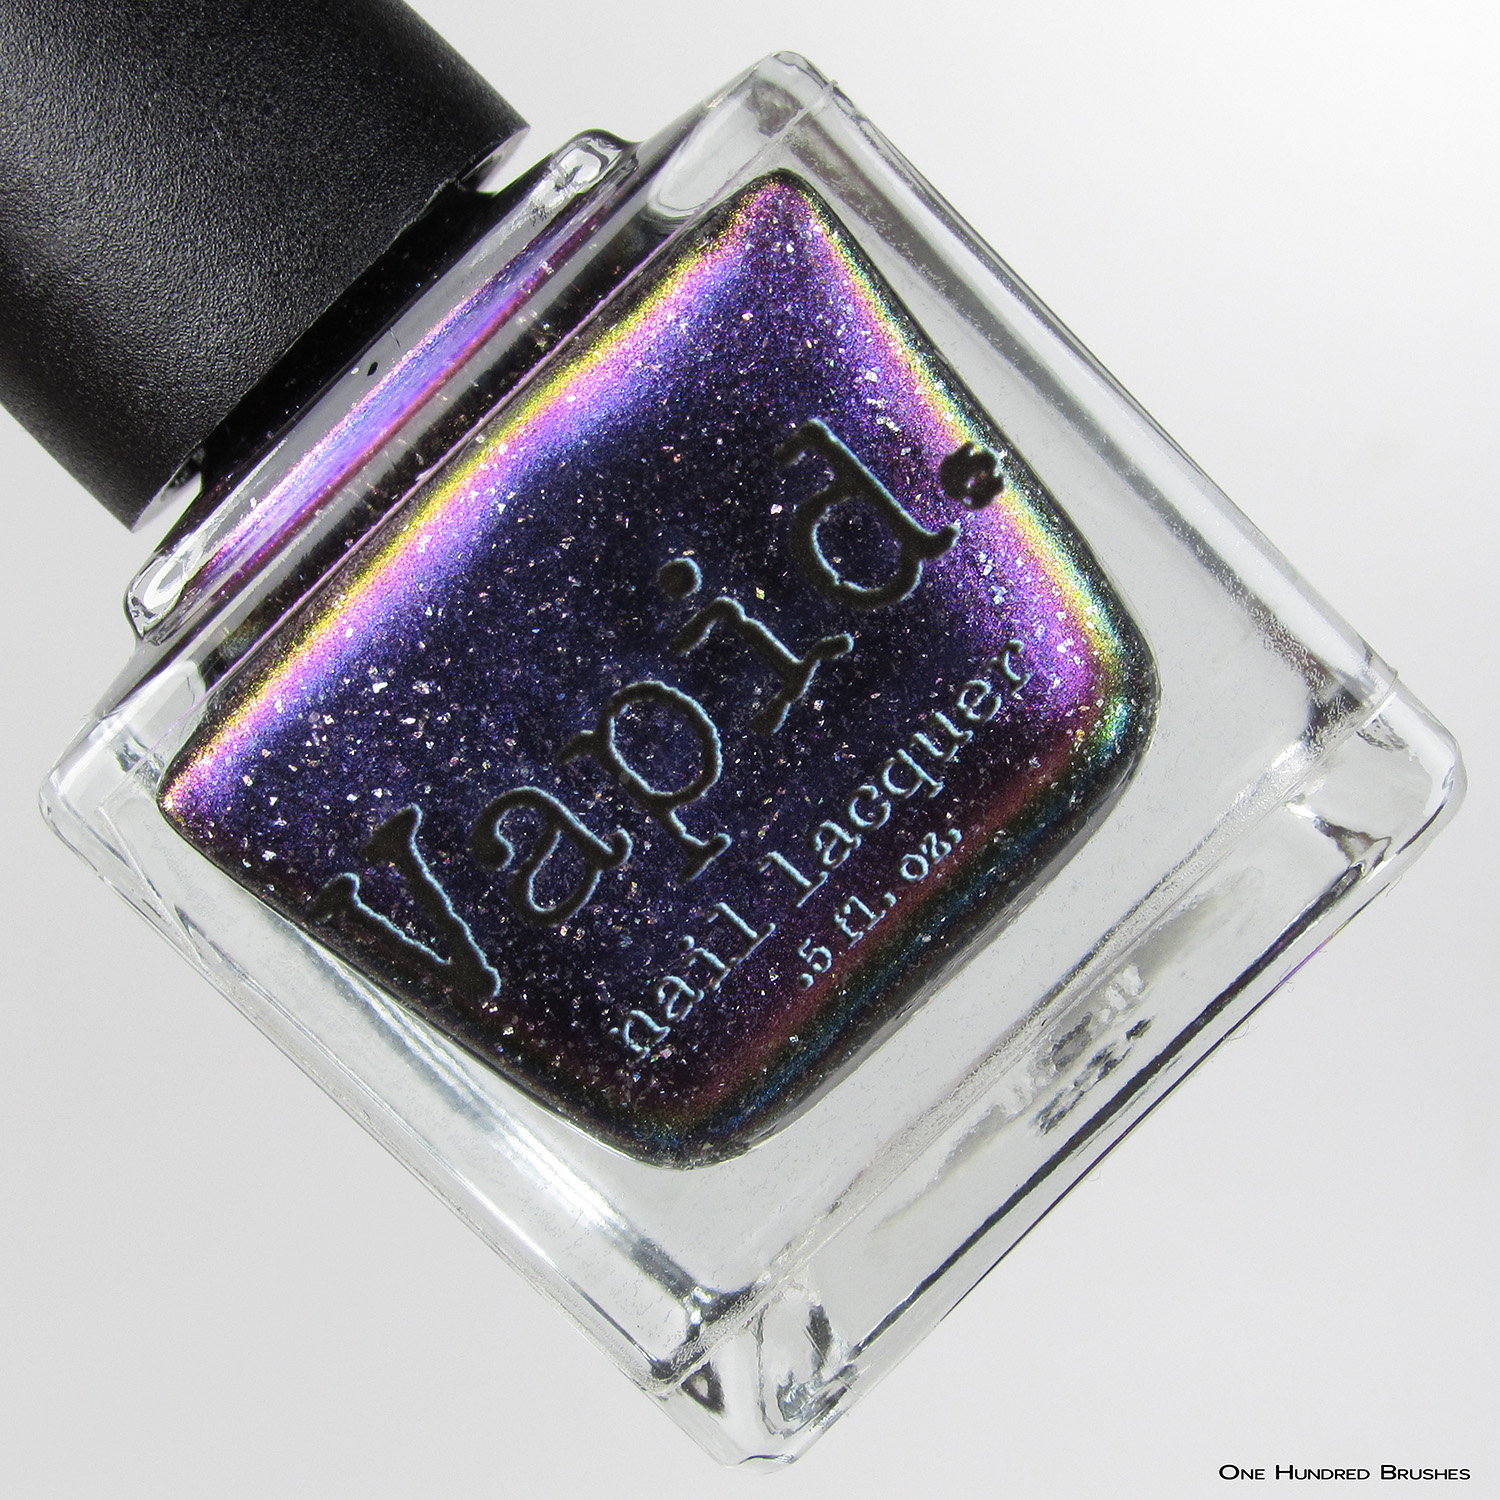 Milky Way Dirty - Cosmos Collection 2019 - Vapid Lacquer